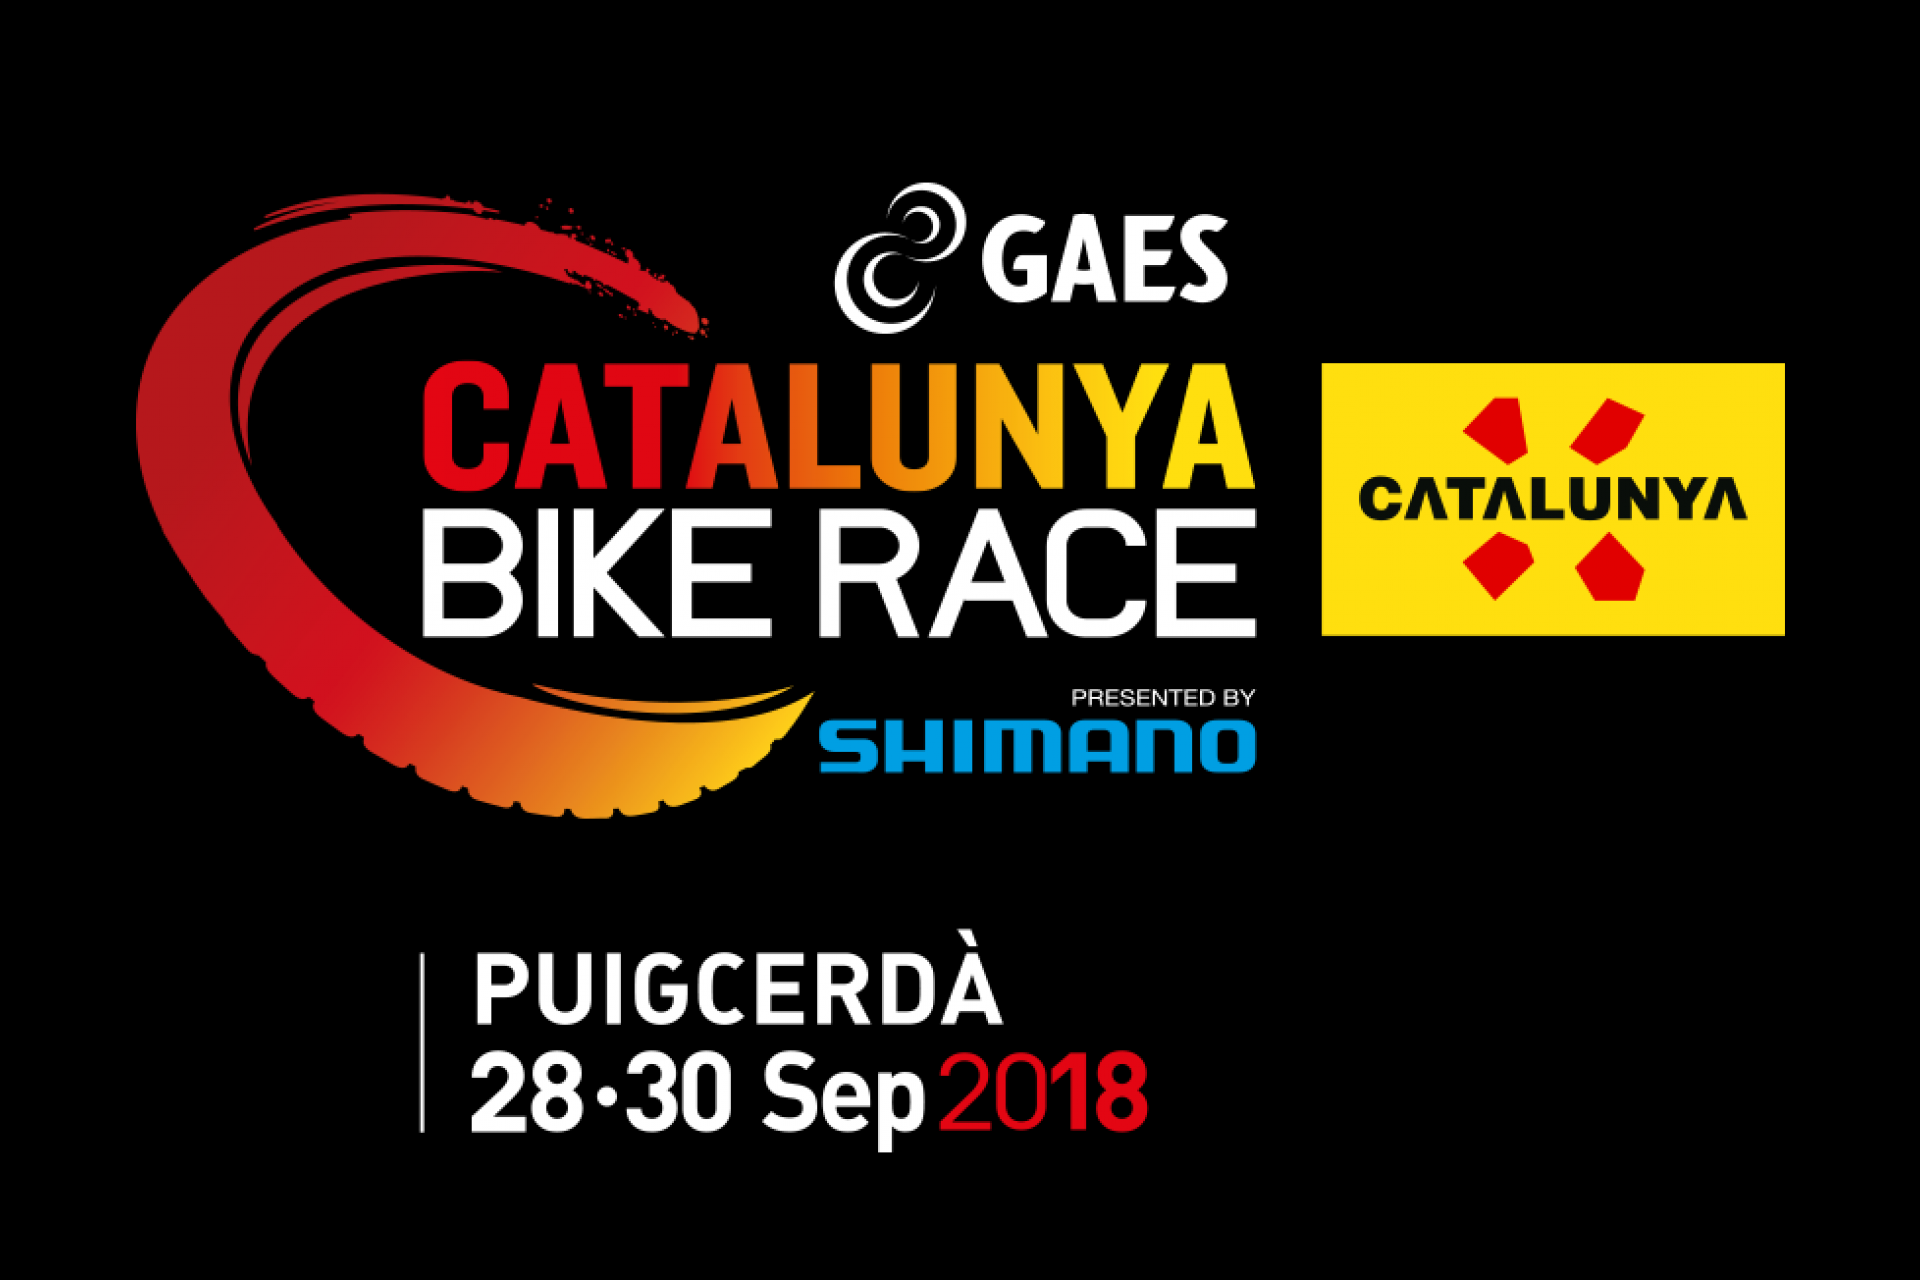 A new edition of GAES Catalunya Bike Race presented by Shimano